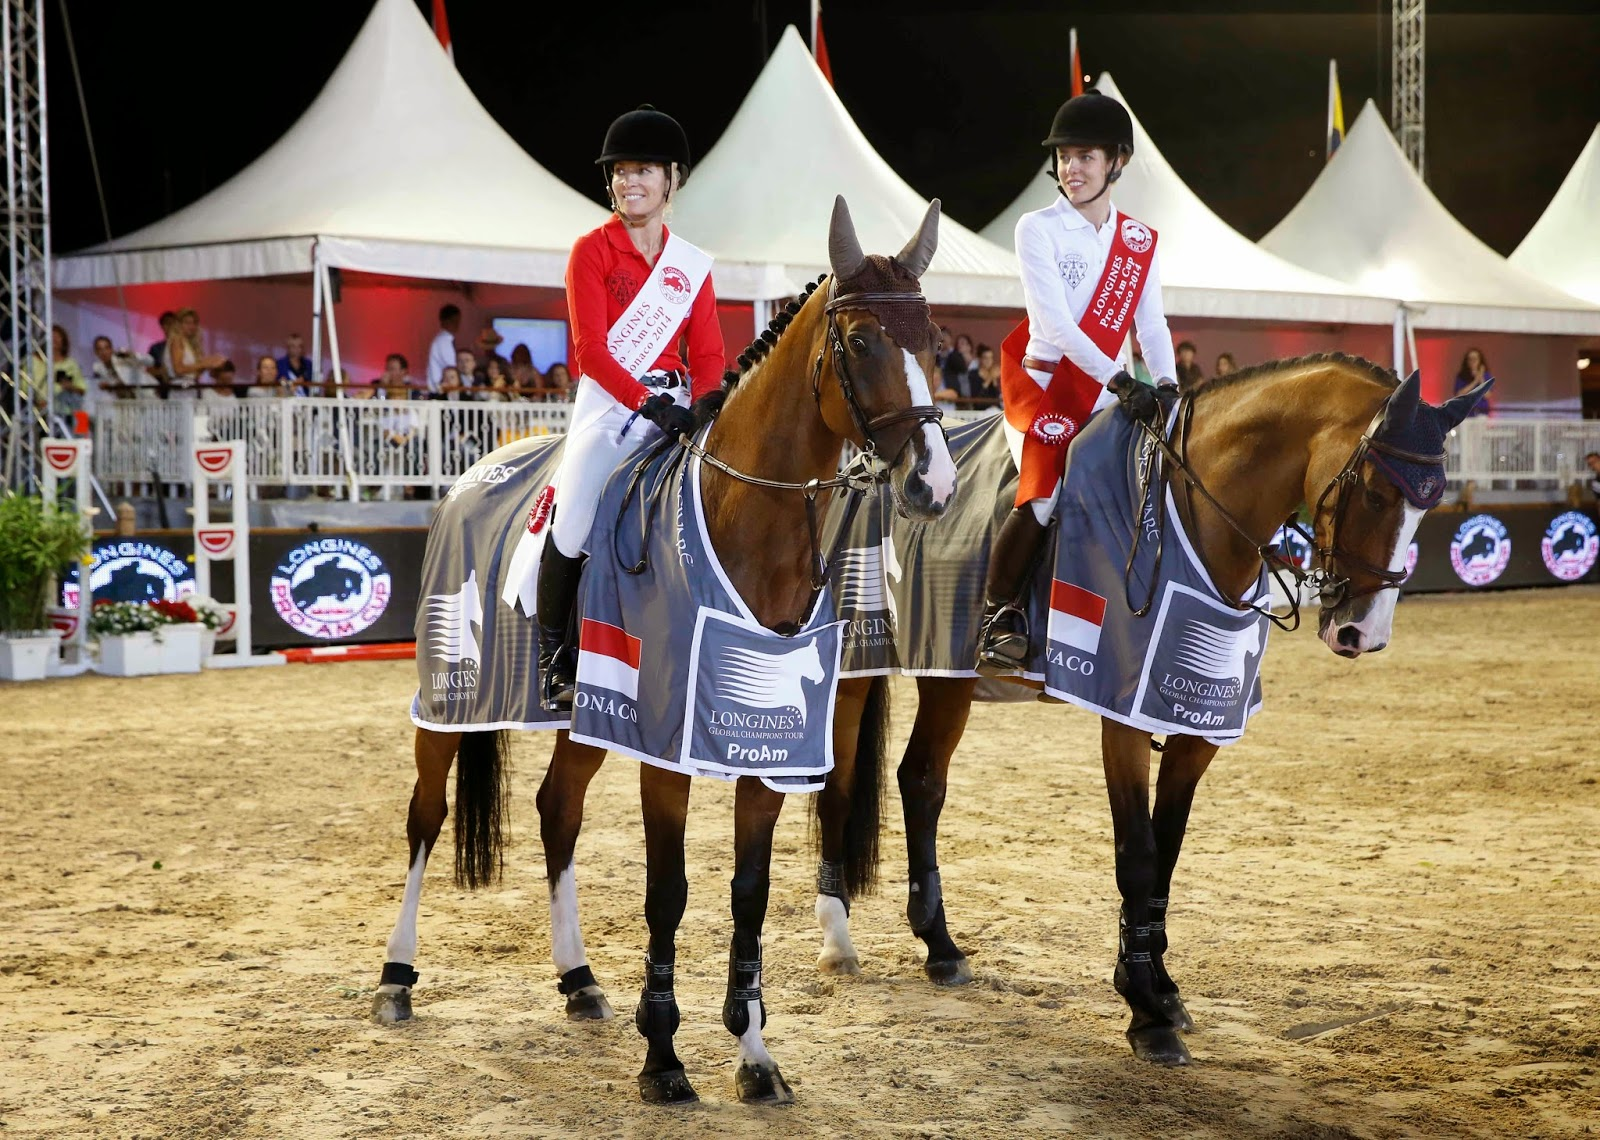 LONGINES Conquest, Global Champions Tour 2014 Montecarlo, Charlotte Casiraghi, gucci, pro am cup, equitazione, show jumping